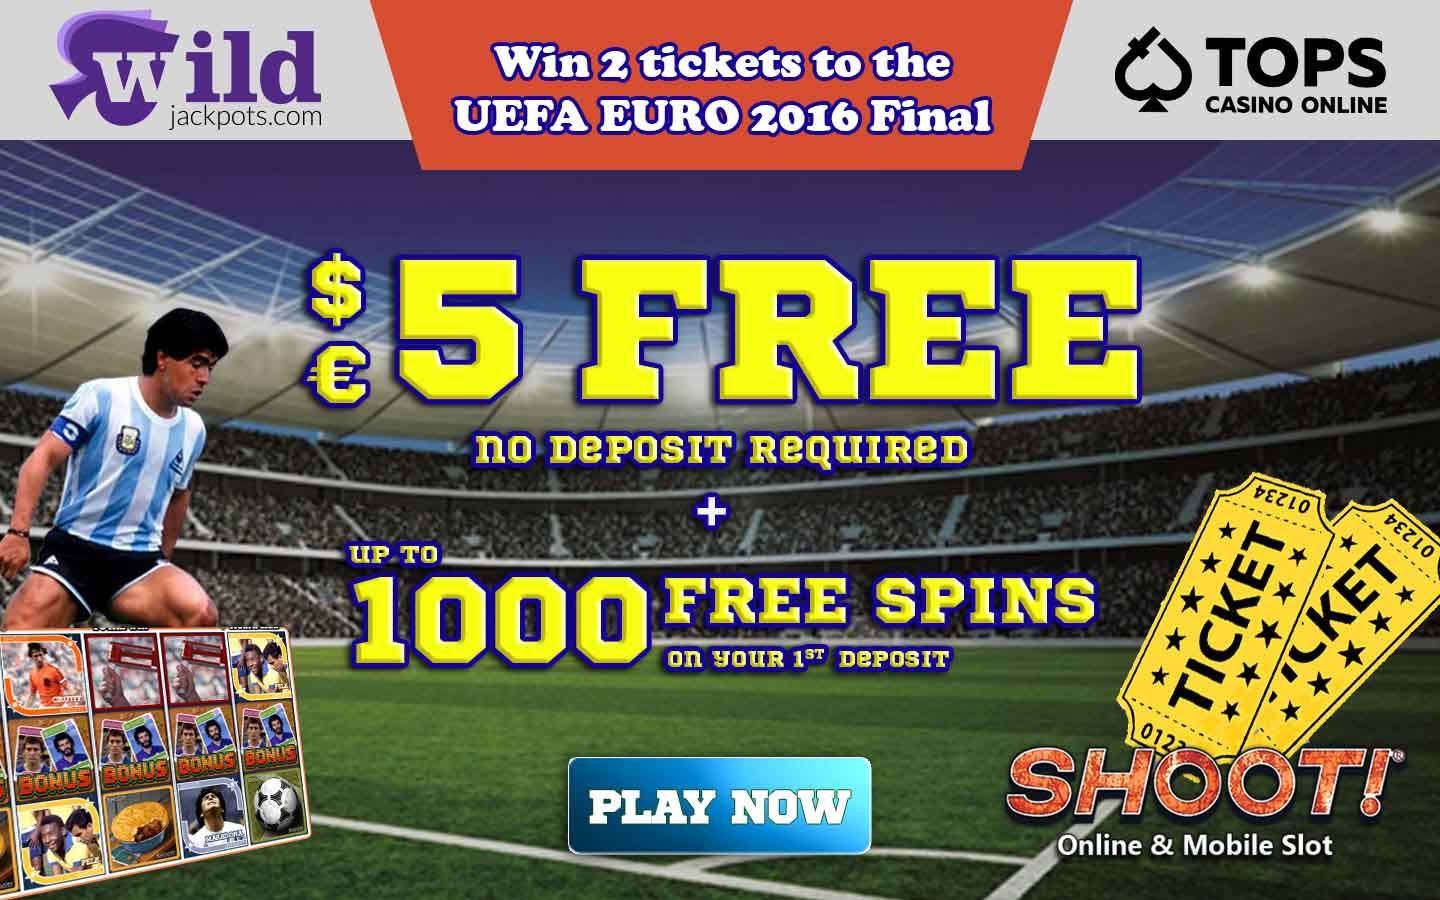 Exclusive Wild Jackpots casino bonus